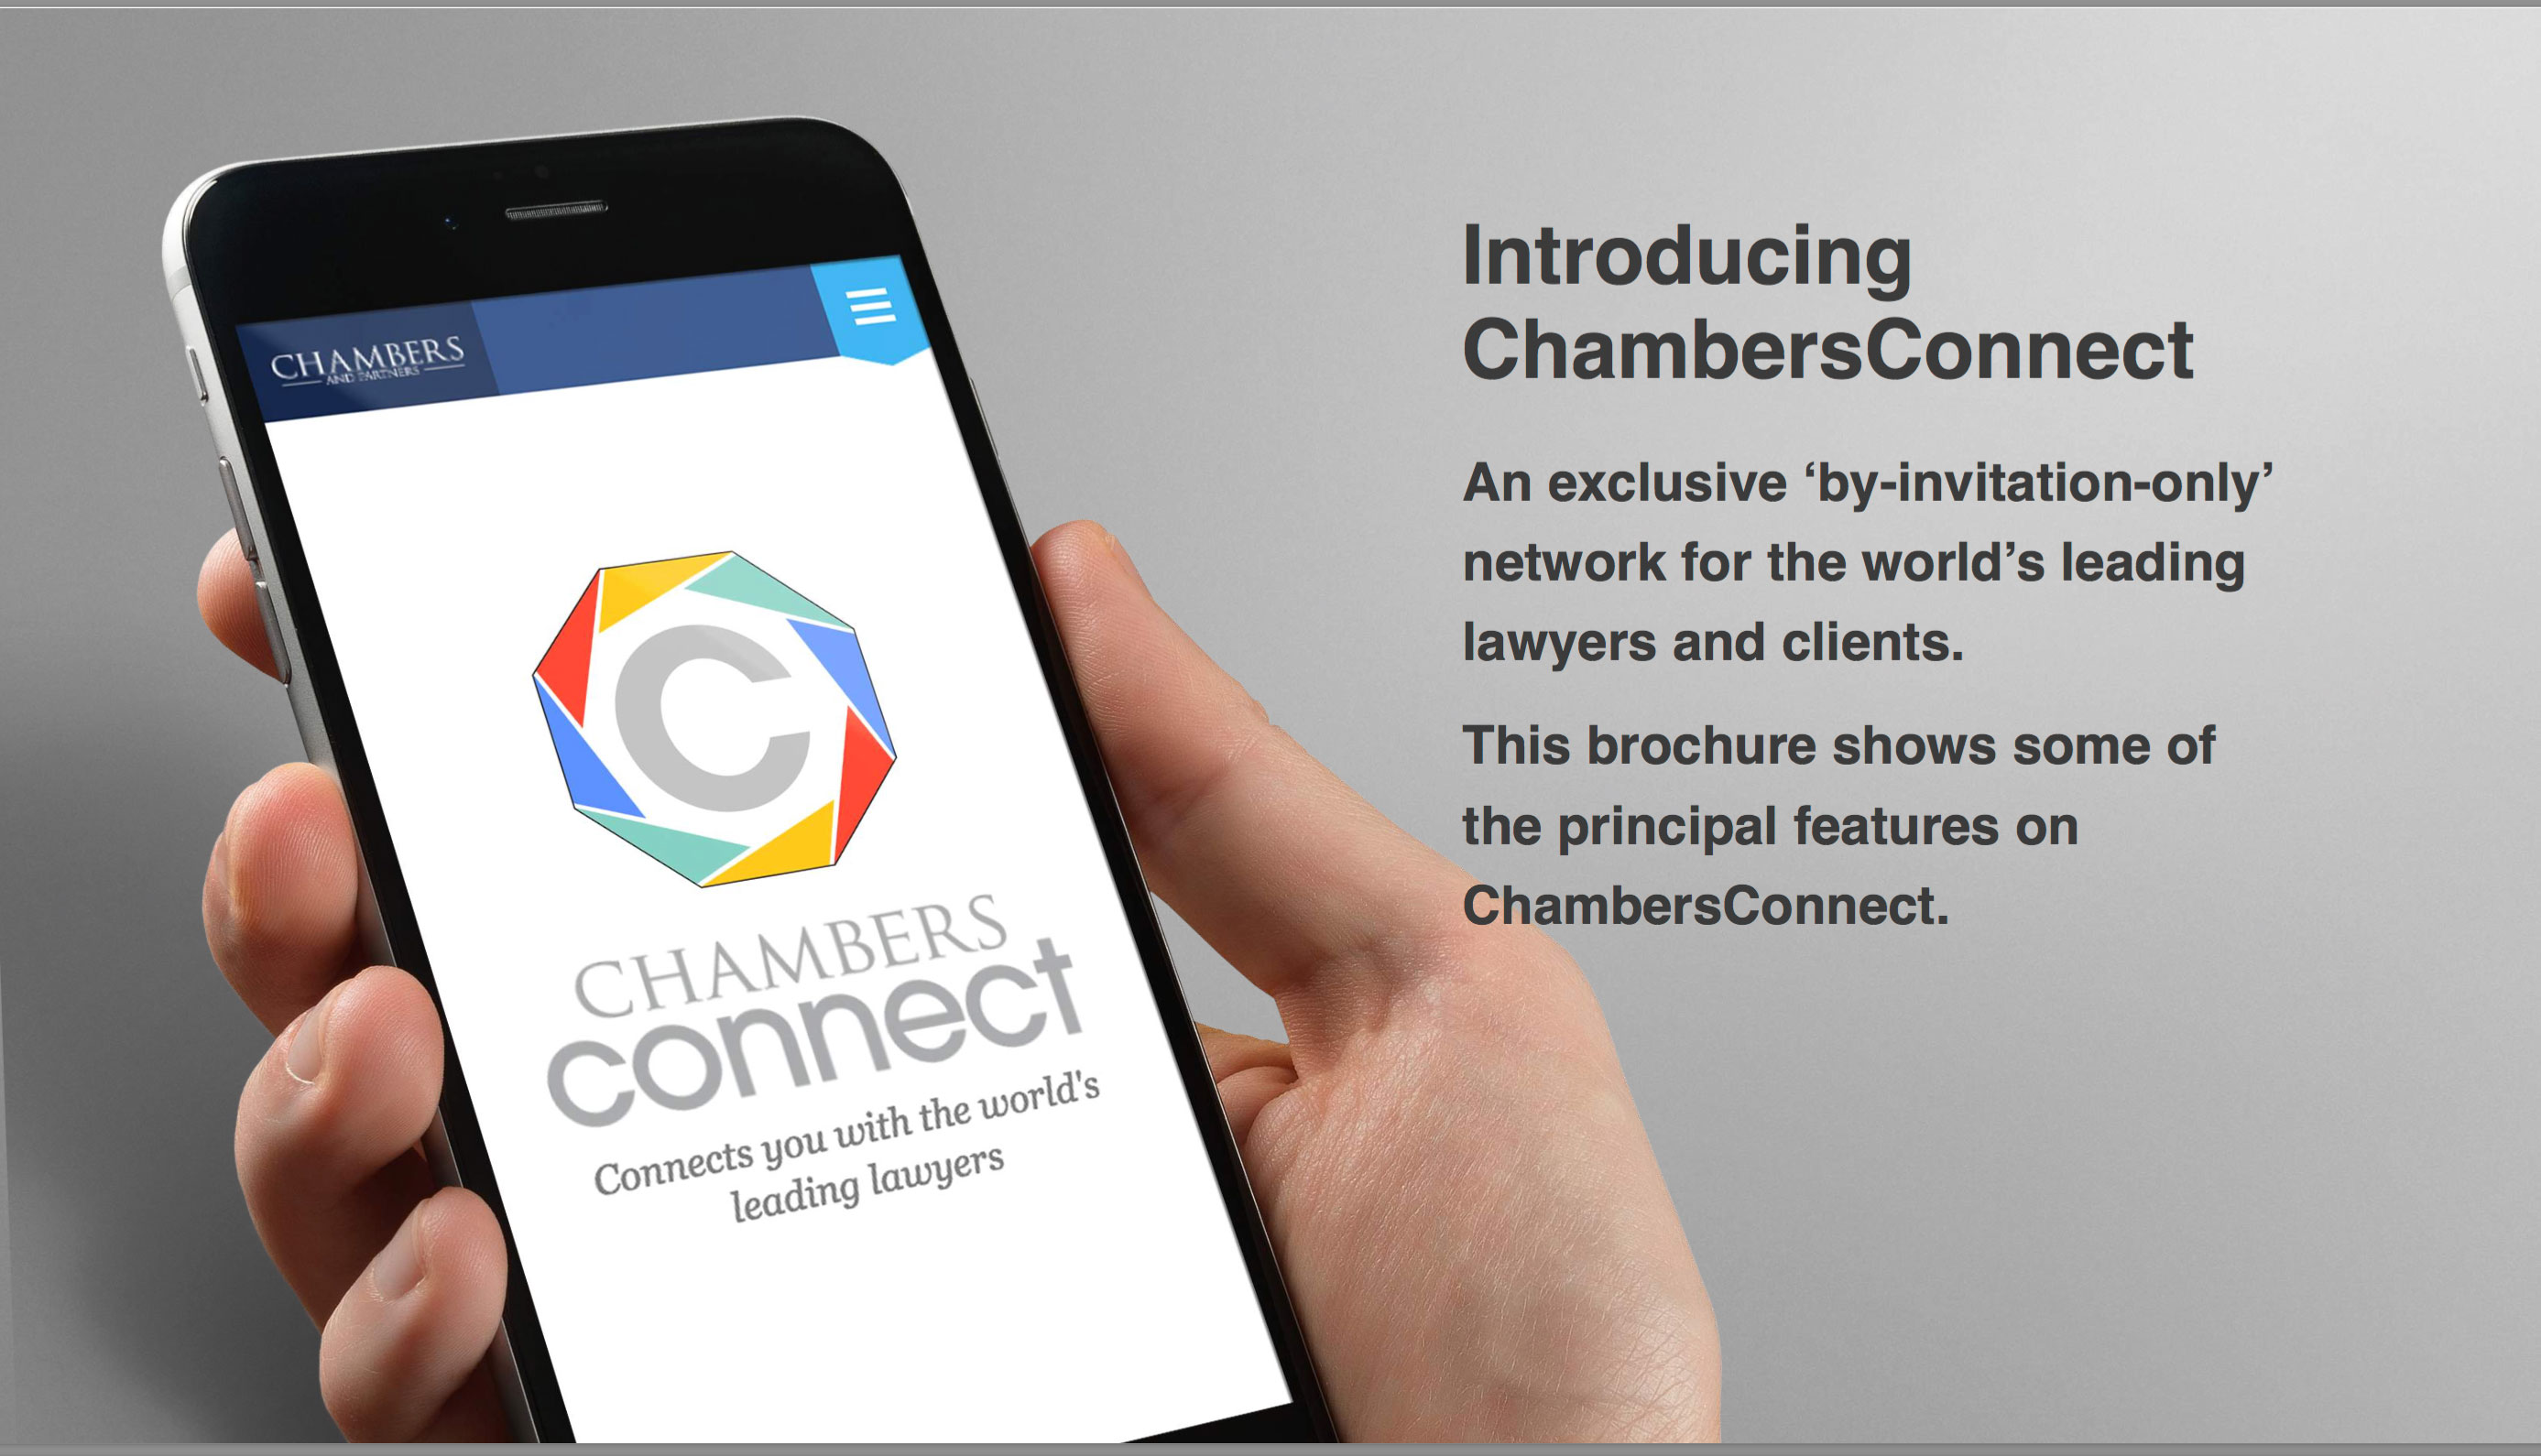 Did you get your invitation to ChambersConnect?